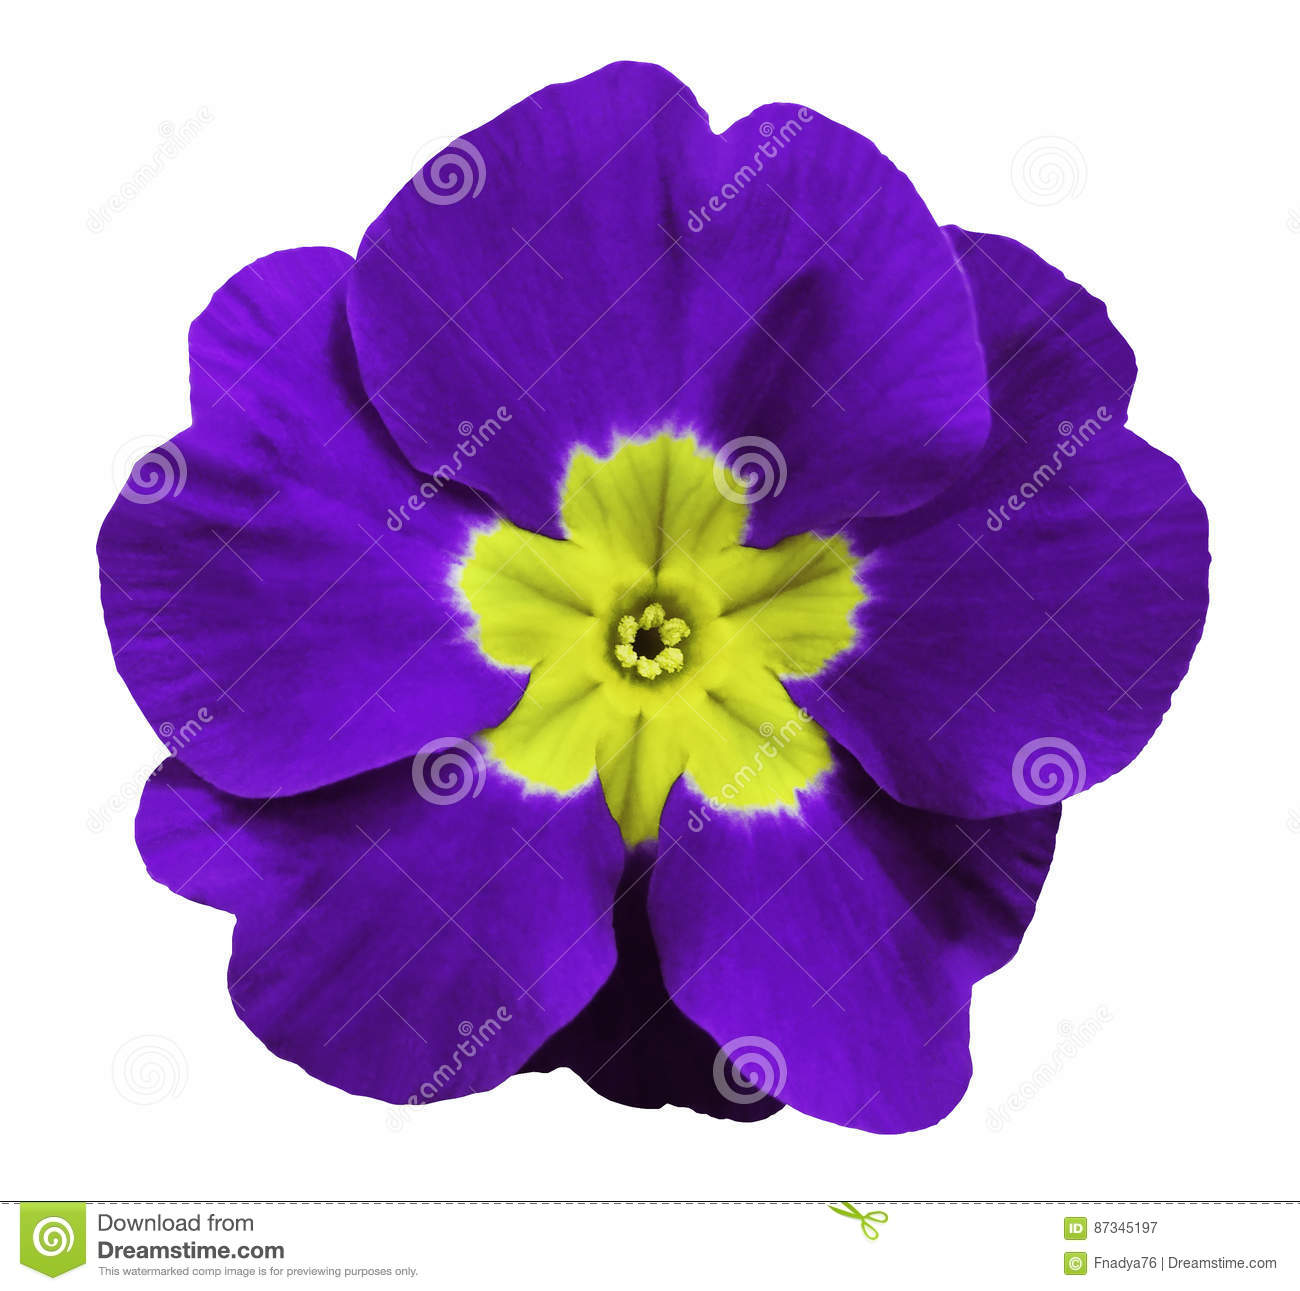 For council Violet blue nude photos sorry, does